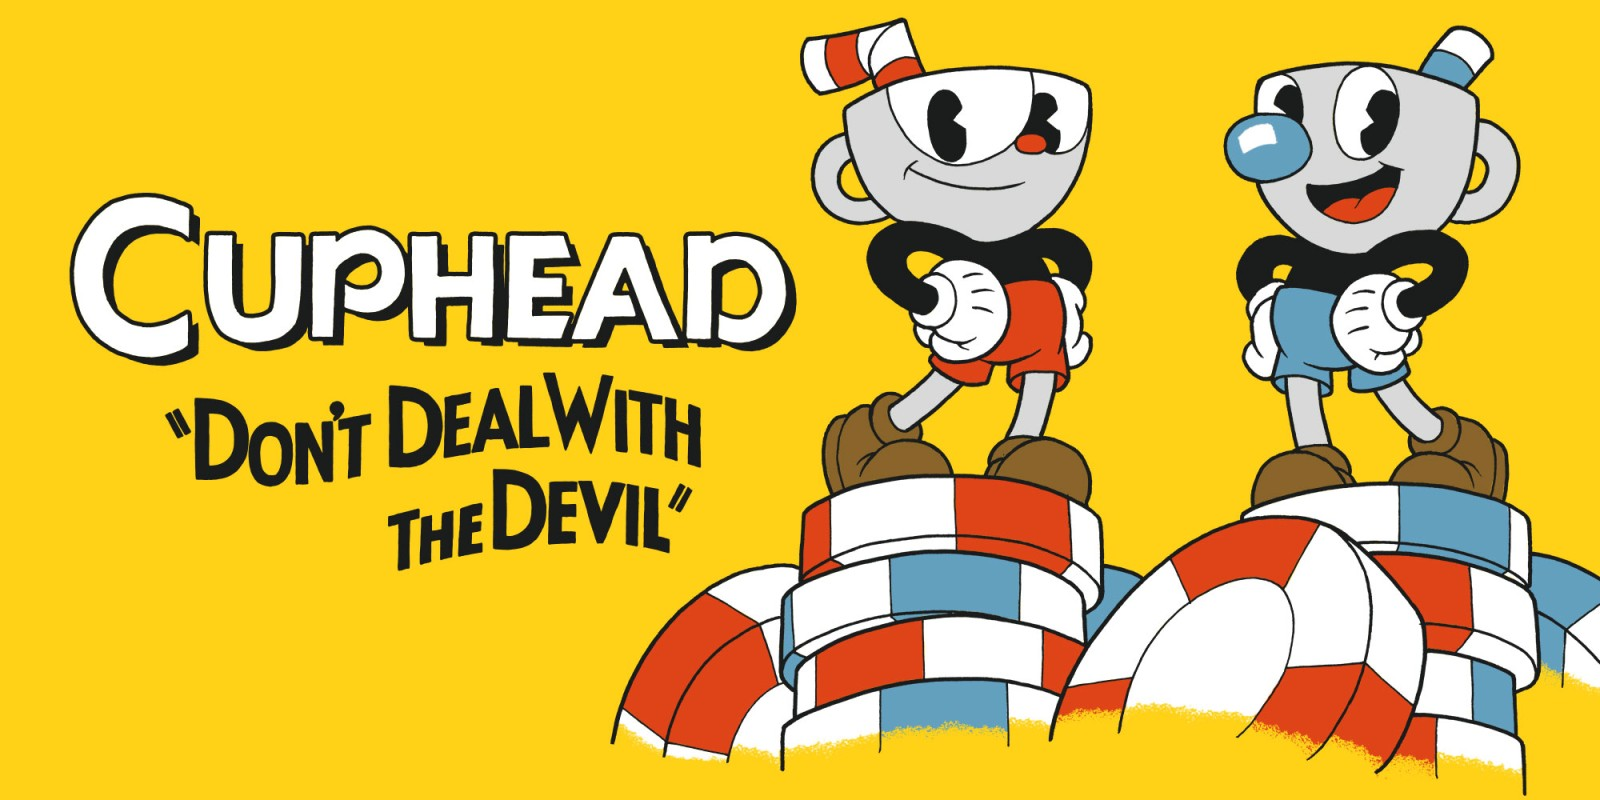 Cuphead Free Update For Xbox One And Pc On April 18 Here